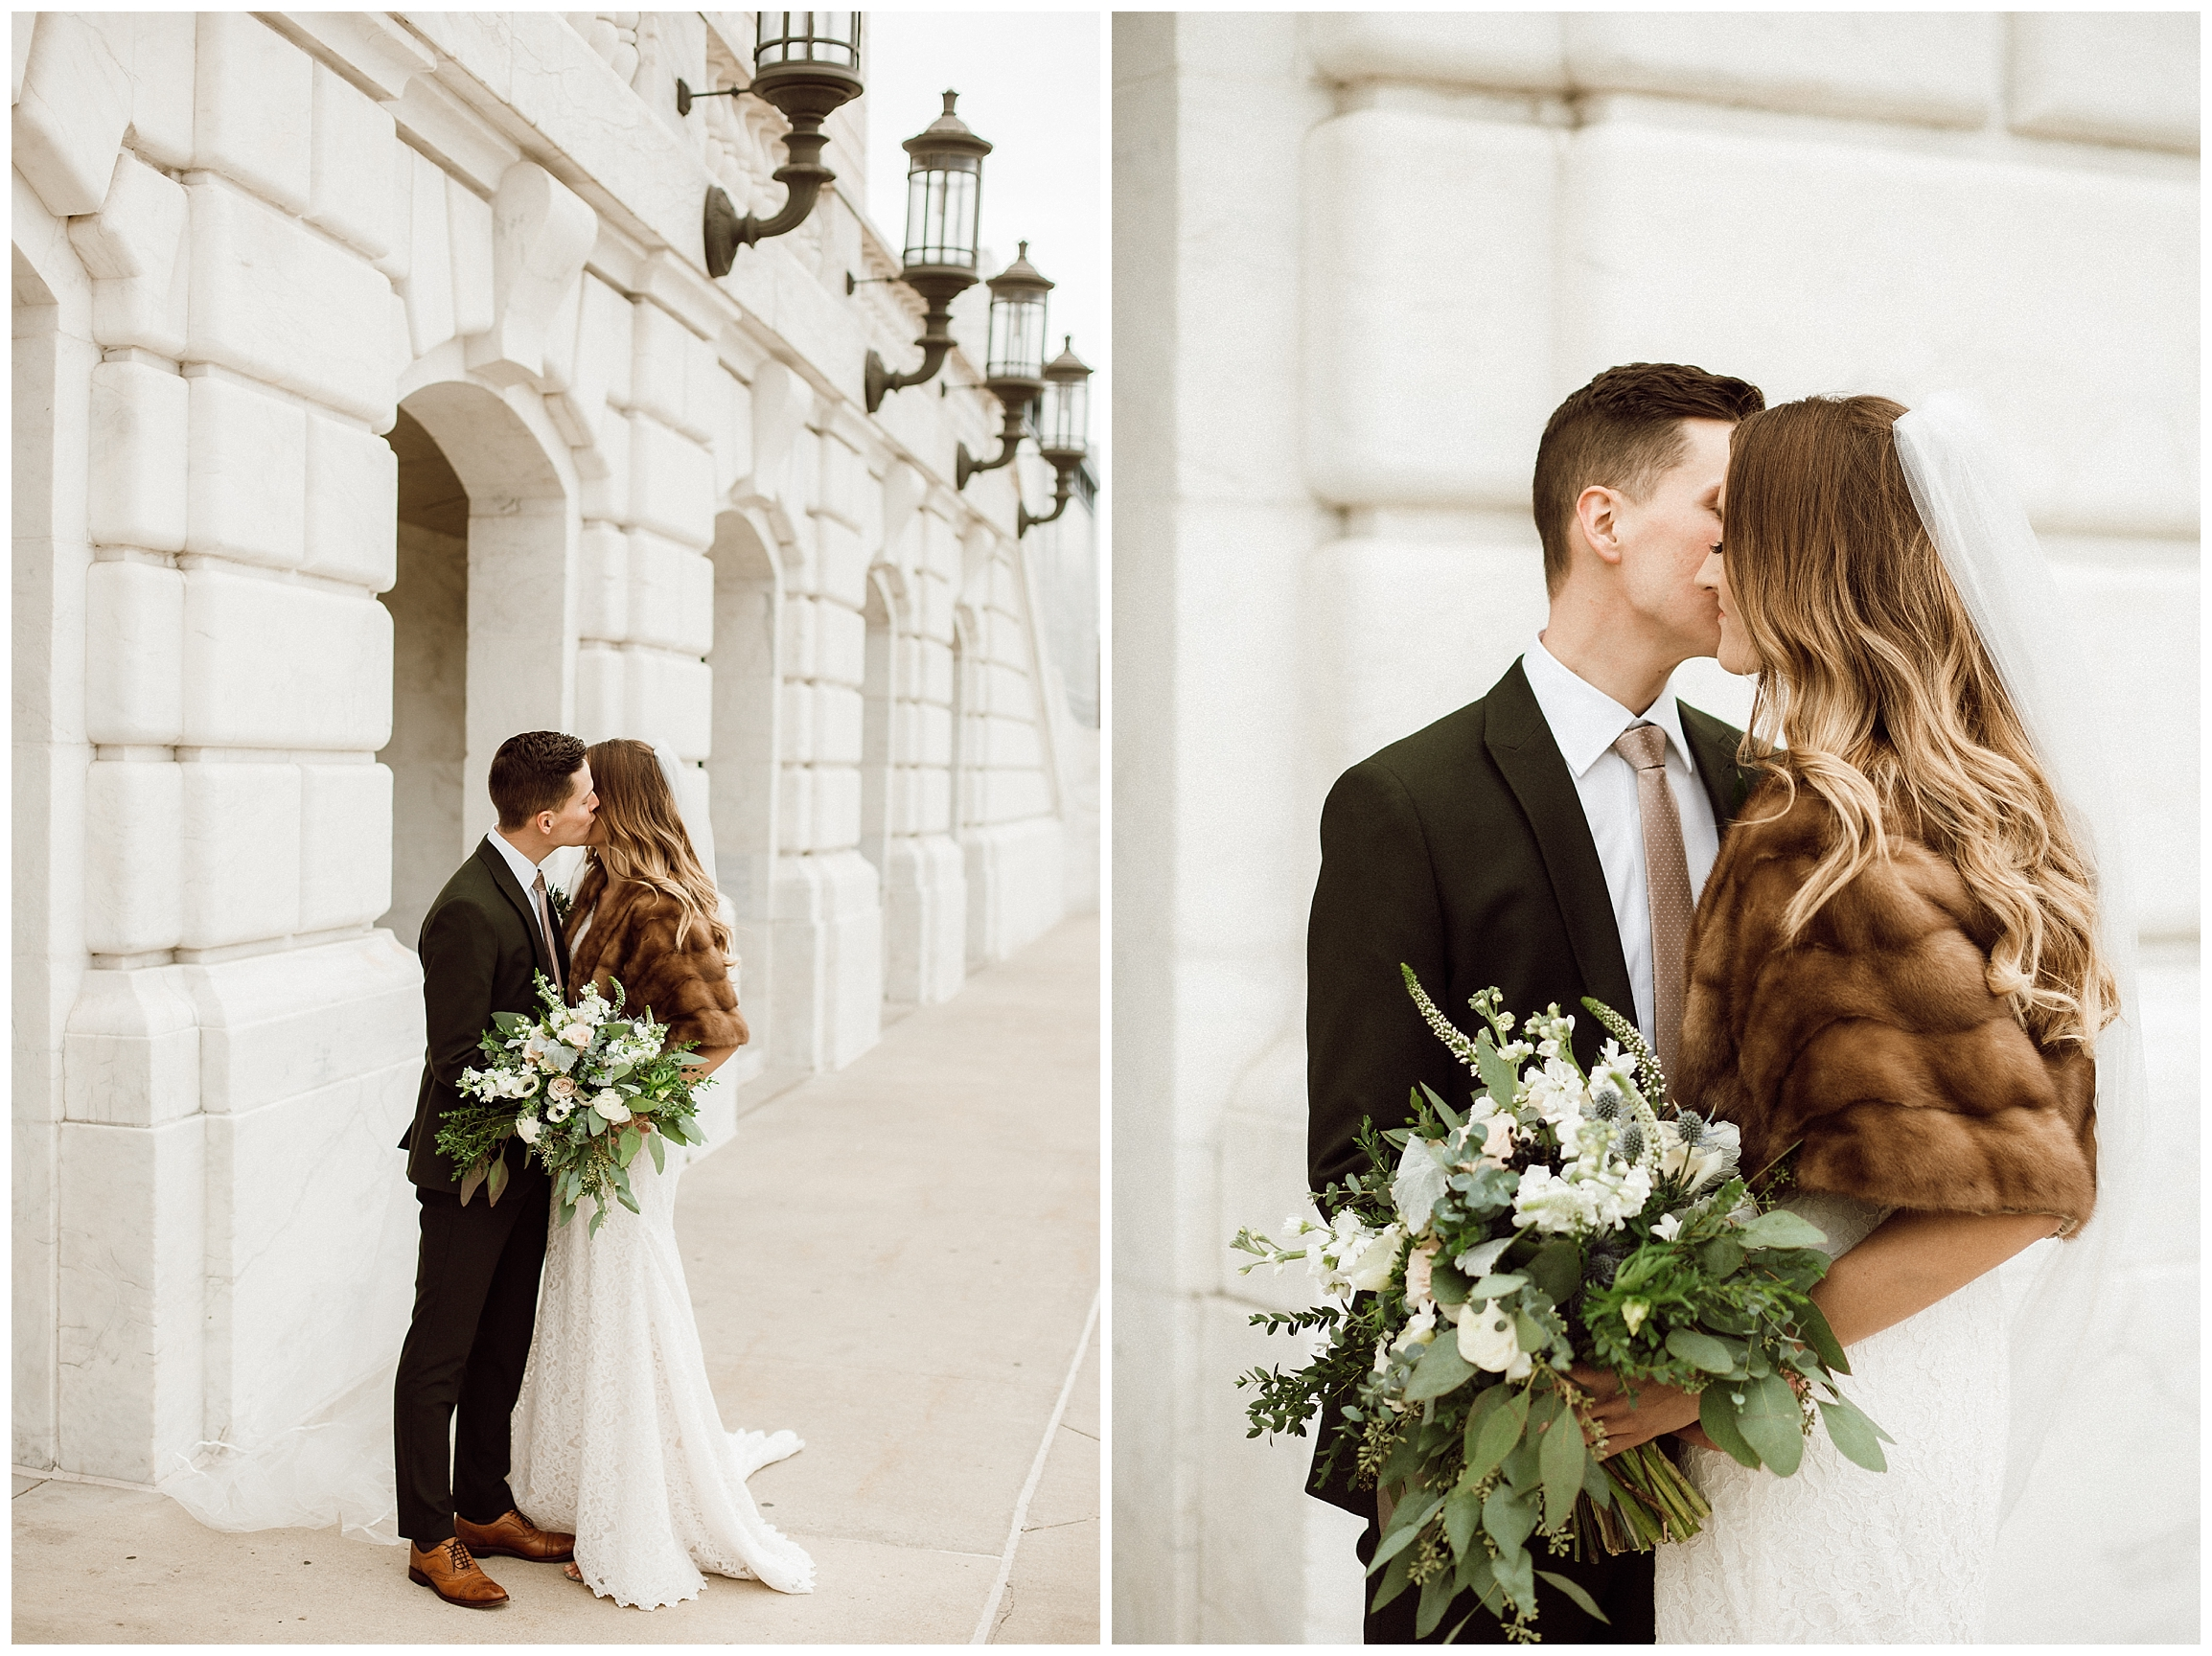 Katie_Vonasek_Photography_Ford_Piquette_Plant_Wedding_Detroit30.JPG